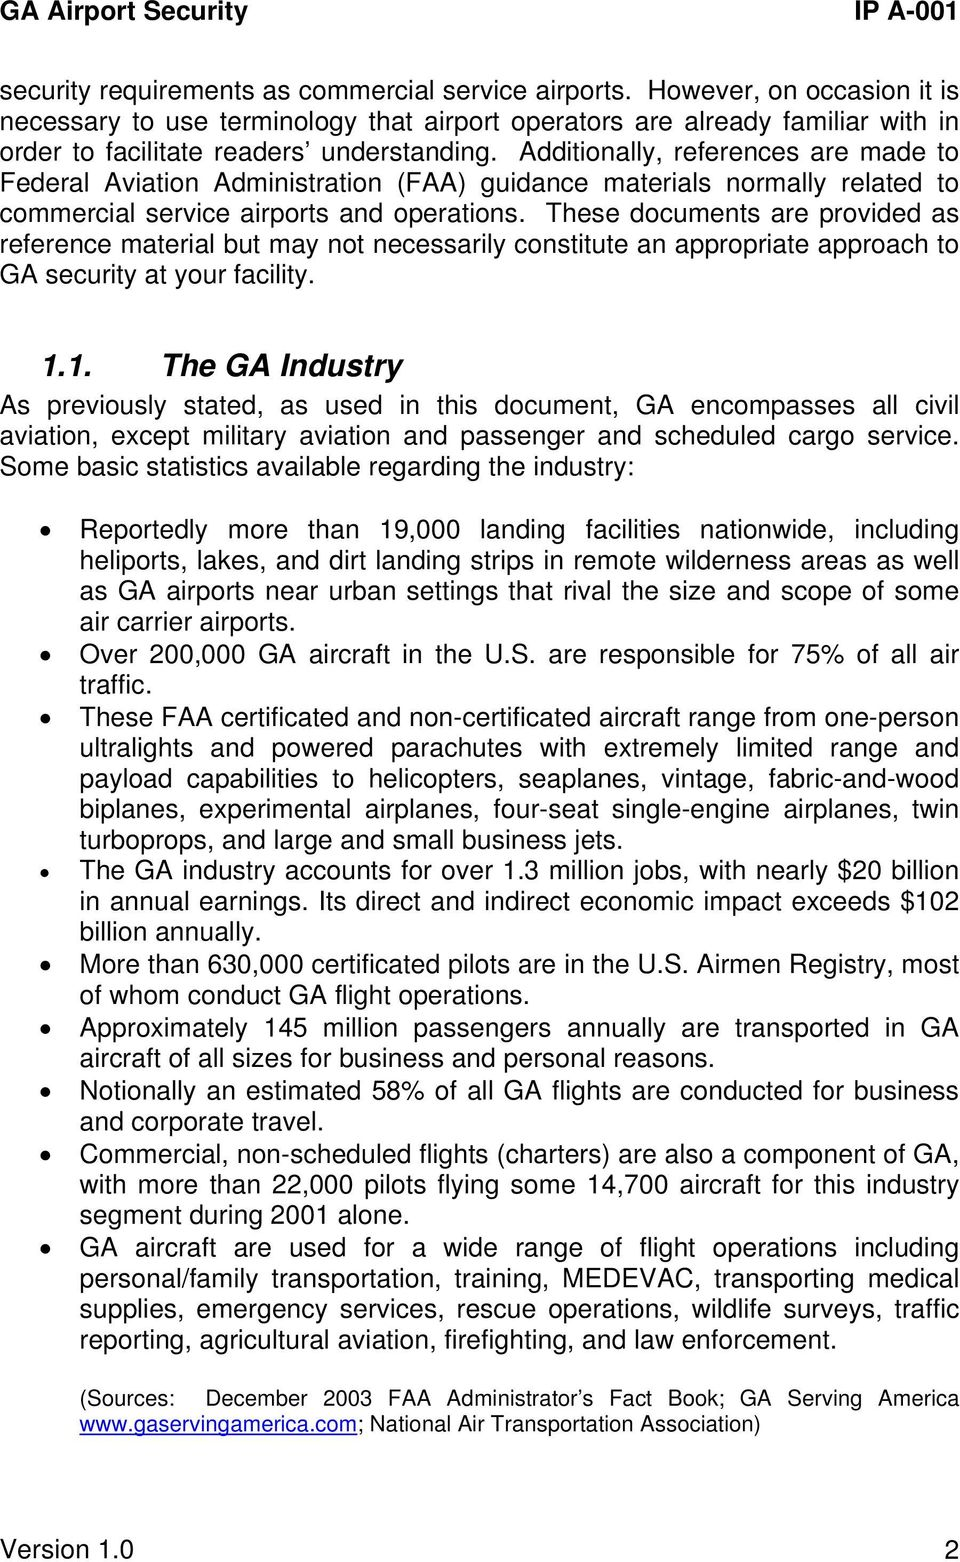 Additionally, references are made to Federal Aviation Administration (FAA) guidance materials normally related to commercial service airports and operations.